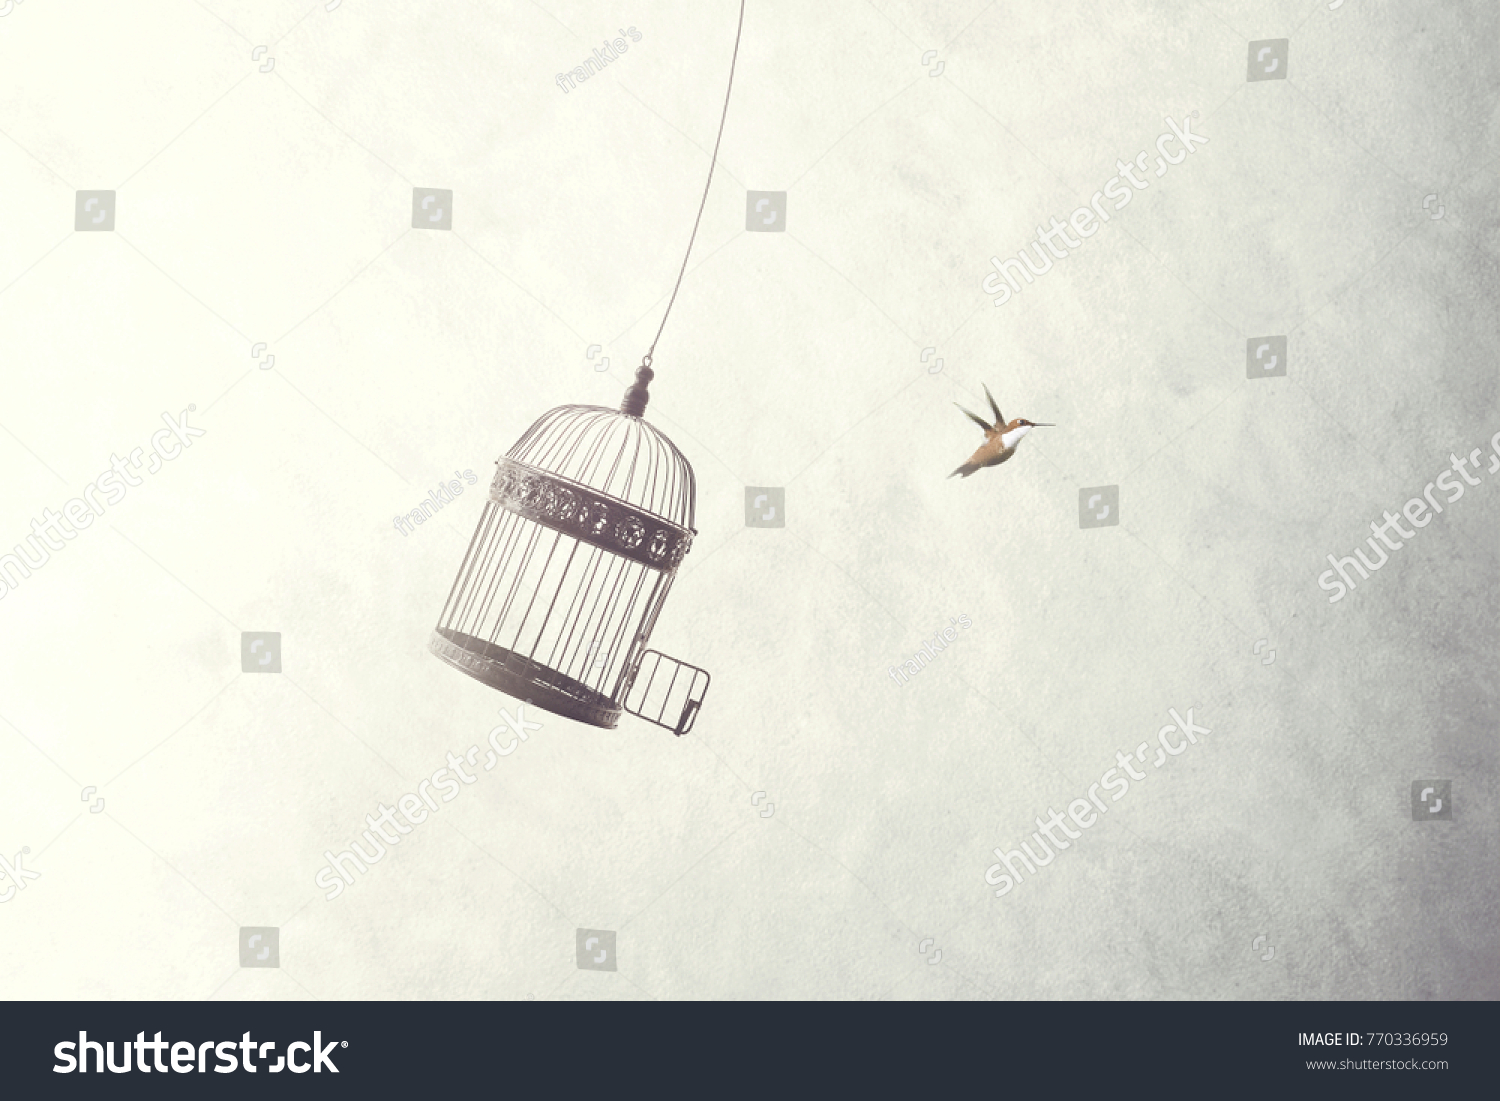 little birds escape out of birdcage, freedom concept #770336959